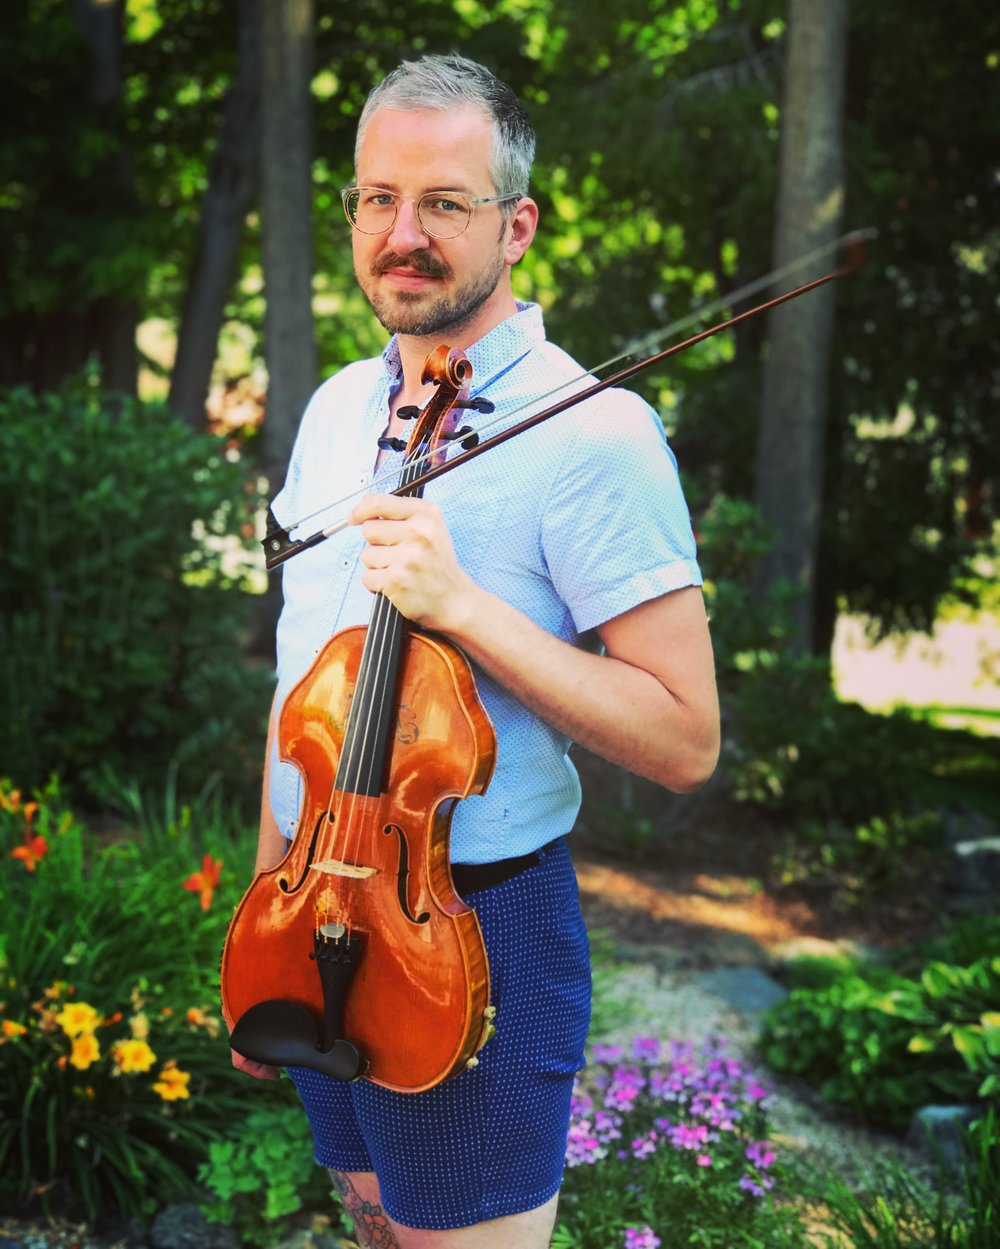 "Samuel Kelder - Described as ""dynamic and committed"" by the Boston Globe, violist Sam Kelder performs regularly in New England as guest artist with ensembles A Far Cry, Boston Modern Orchestra Project, Guerilla Opera, Callithumpian Consort, Sound Icon, and various regional symphony orchestras including Cape Cod Symphony, Cape cod chamber orchestra, Rhode Island Philharmonic, Phoenix Orchestra Reborn, and the New Bedford Symphony. Kelder recently joined the Boston based string trio Sound Energy, an ensemble dedicated to searching for ways to push the traditional violin-viola-cello combination to represent the bold and daring voices of 20th- & 21st-century composers. In addition to local projects, Kelder has also performed as the featured artist at Third Practice Electroacoustic Festival, as soloist at New York City Electroacoustic Music Festival, and as guest artist with the Arctic Philharmonic in Norway. His studies yield a B.M. from the University of Houston, M.M. from Mannes the New School for Music, and graduated May 2017 from doctoral studies at Boston University as teaching assistant to Michelle LaCourse. Other major teachers and influences include Wayne Brooks, Karen Dreyfus, Kyung Sun Lee, Laurie Smukler, and Bayla Keyes. Sam has had the great fortune to work with many prominent living composers such as Hans Abrahamsen, Derek Bermel, William Bolcom, Anthony Cheung, Chaya Czernowin, Zosha Di Castri, Péter Eötvös, Michael Finnissey, Luca Francesconi, Beat Furrer, Georg Friedrich Haas, John Harbison, Heinz Holliger, Philippe Leroux, Nico Muhly, Olga Neuwirth, Krzysztof Penderecki, Matthius Pintscher, Roger Reynolds, Joan Tower, and Eric Wubbles. Sam can be heard on Not Art Records, and is an artist member of Music for Food, a musician-led initiative to fight hunger in our home communities"